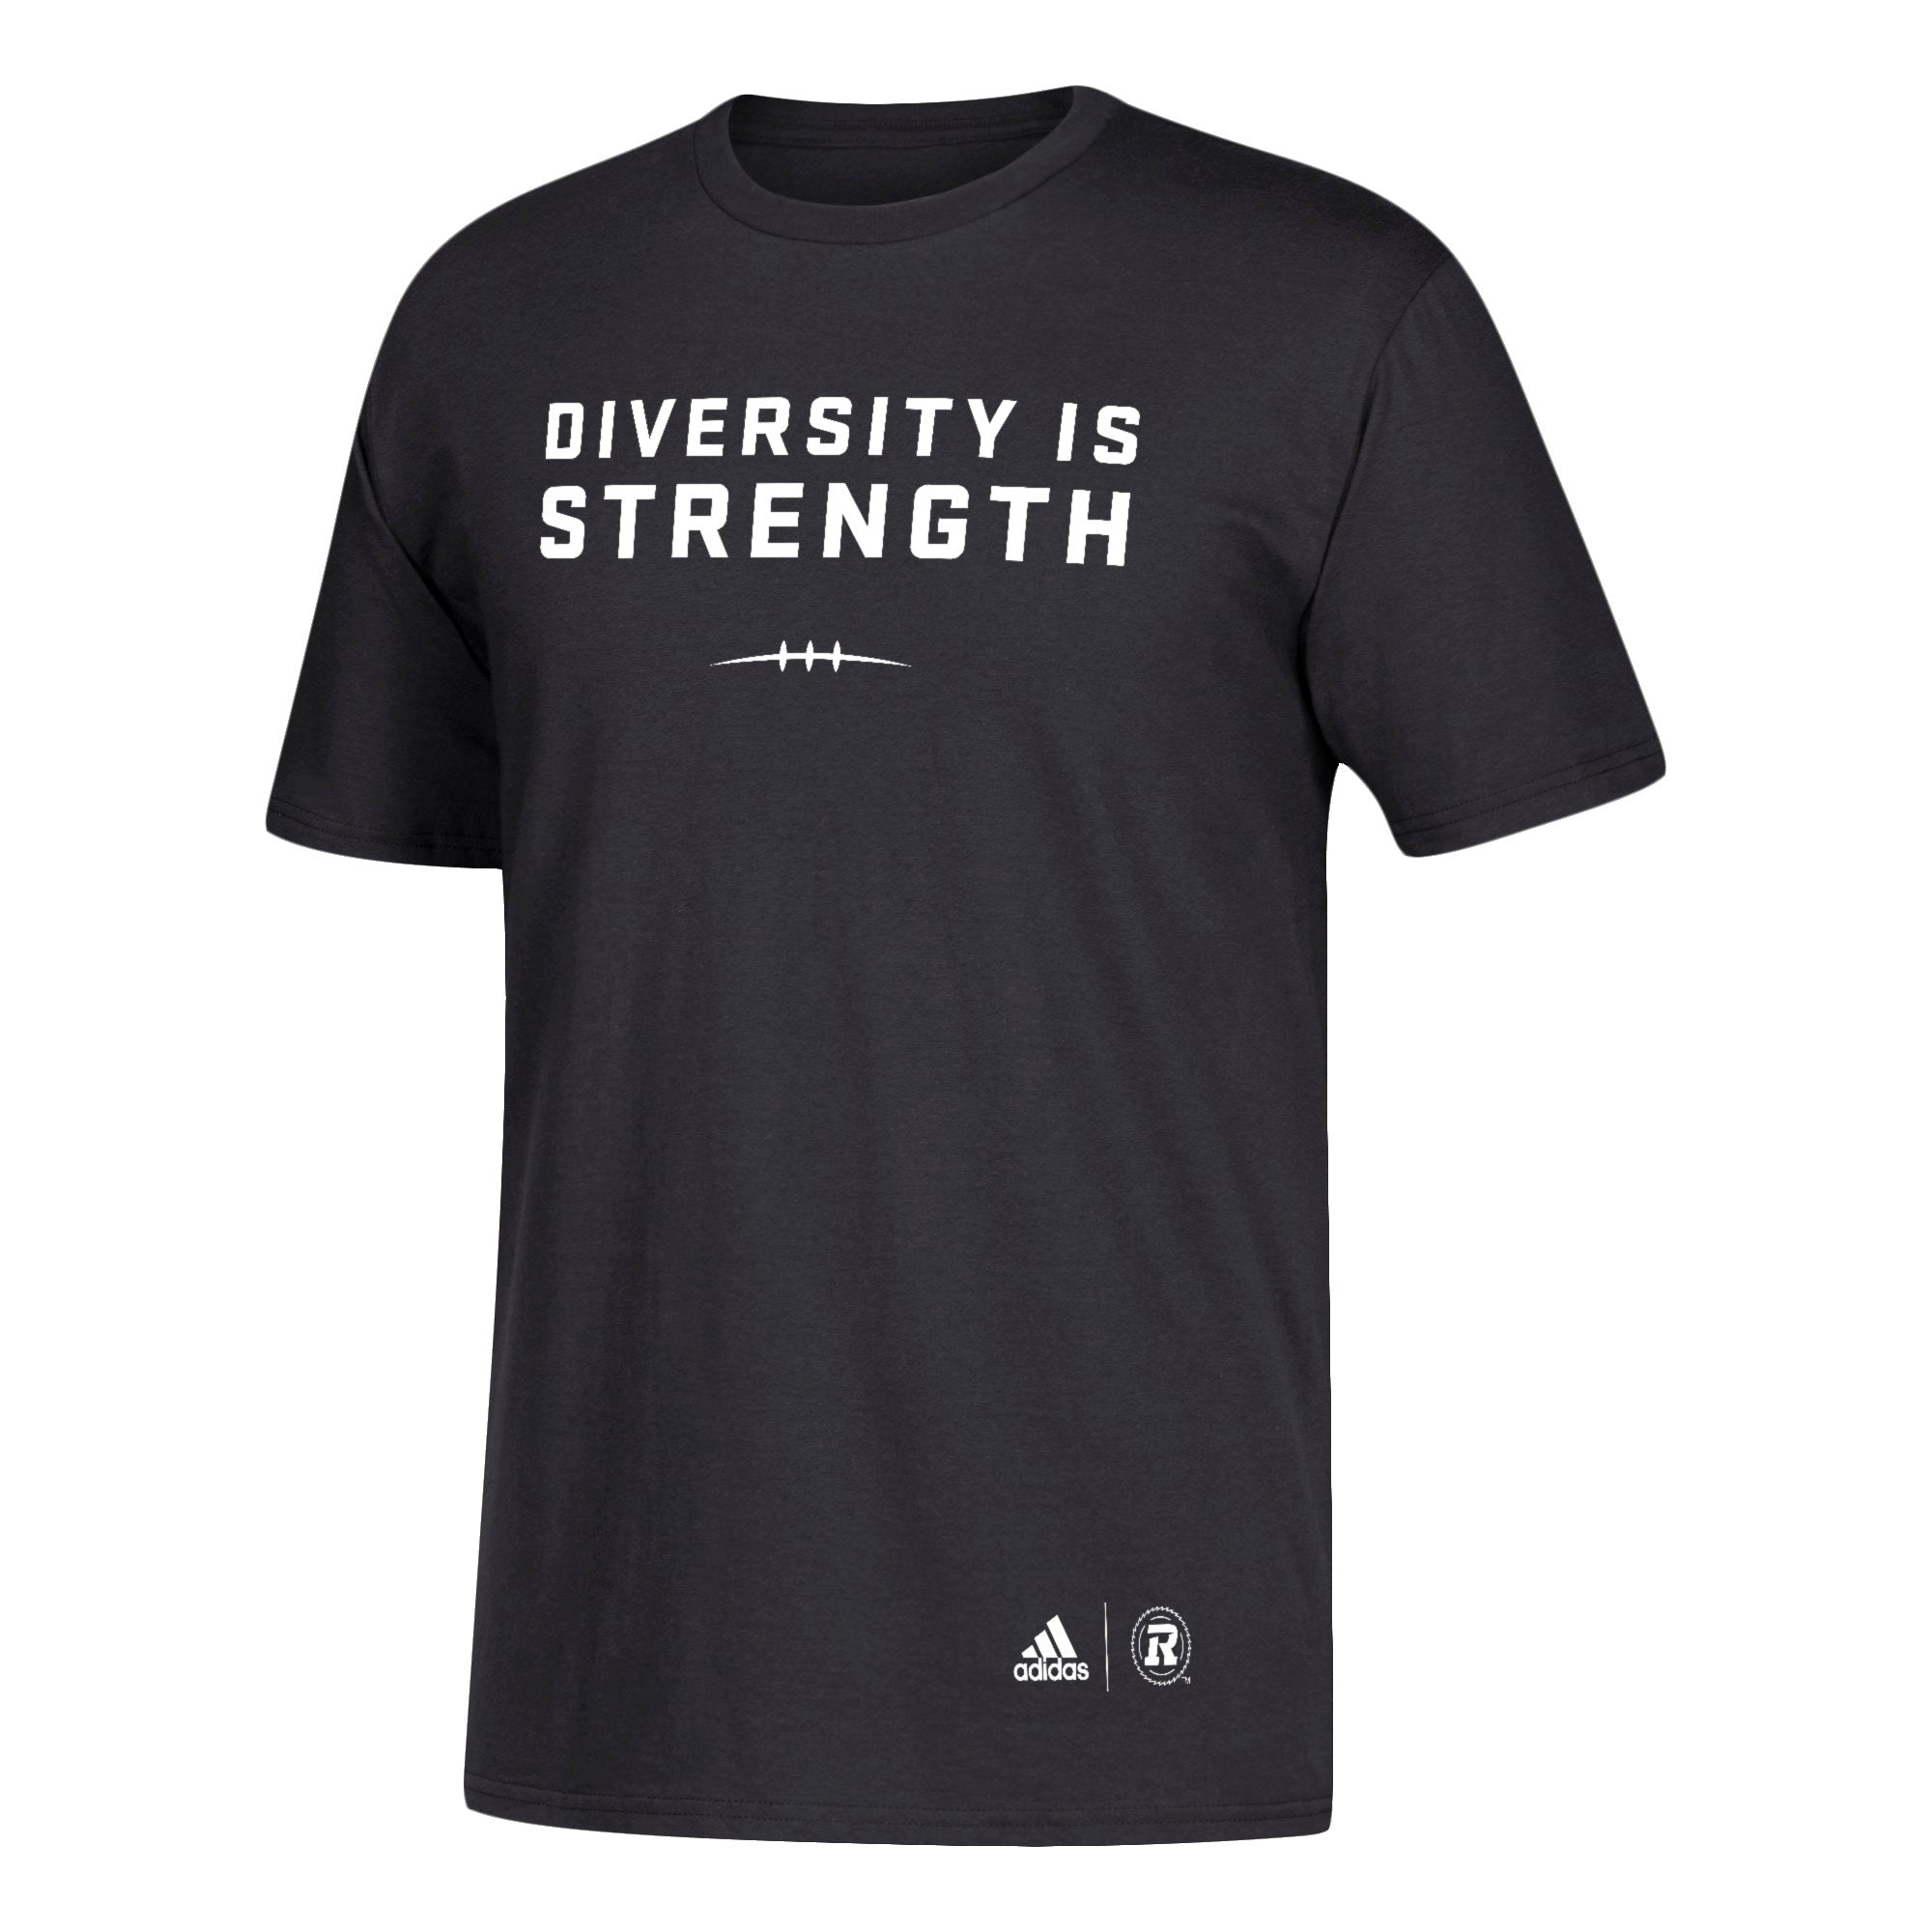 Ottawa Redblacks Diversity is Strength Shirt